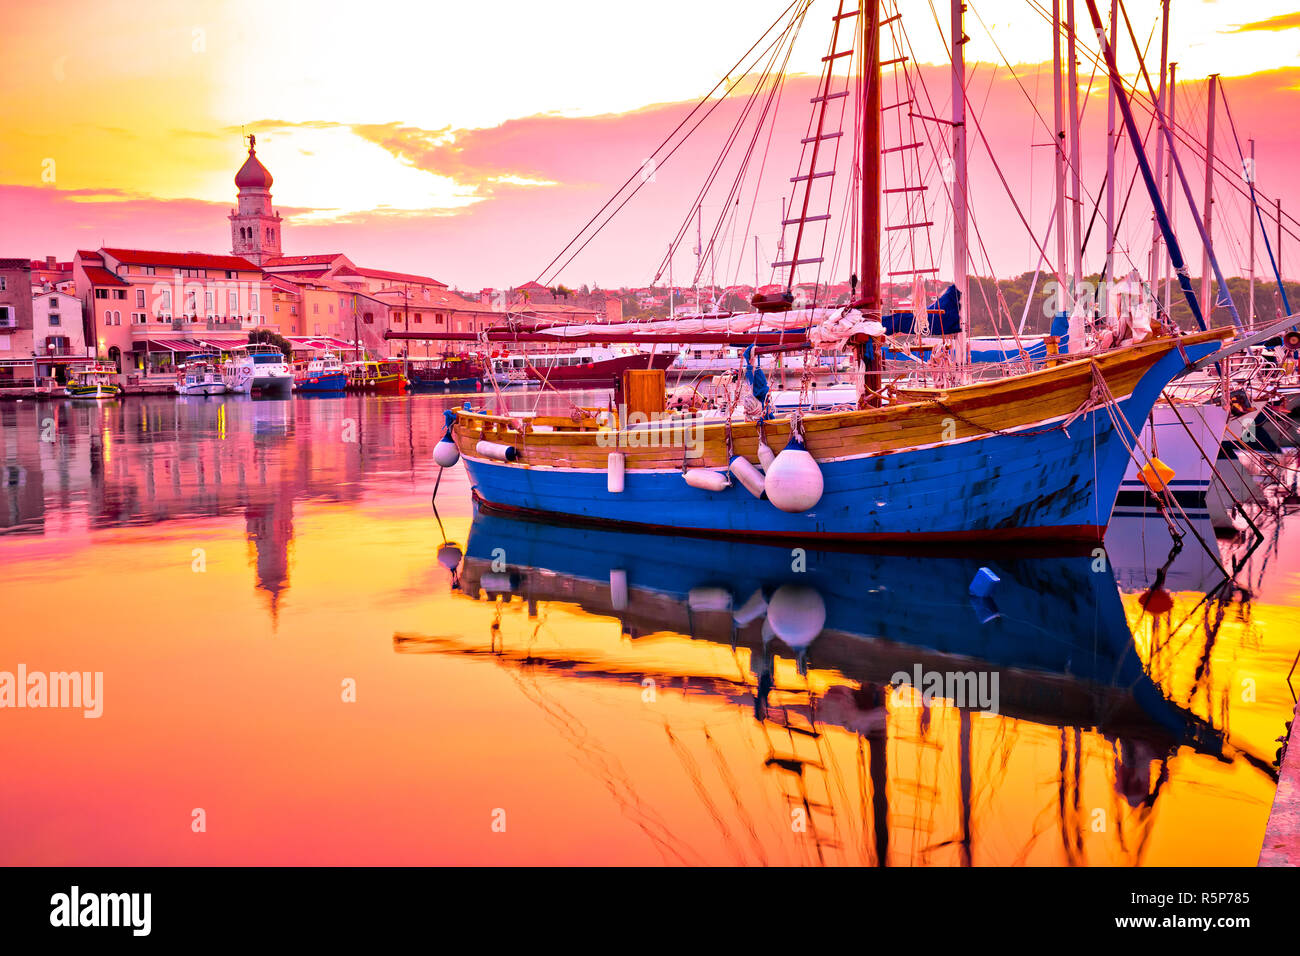 Historic island town of Krk golden dawn waterfront view Stock Photo